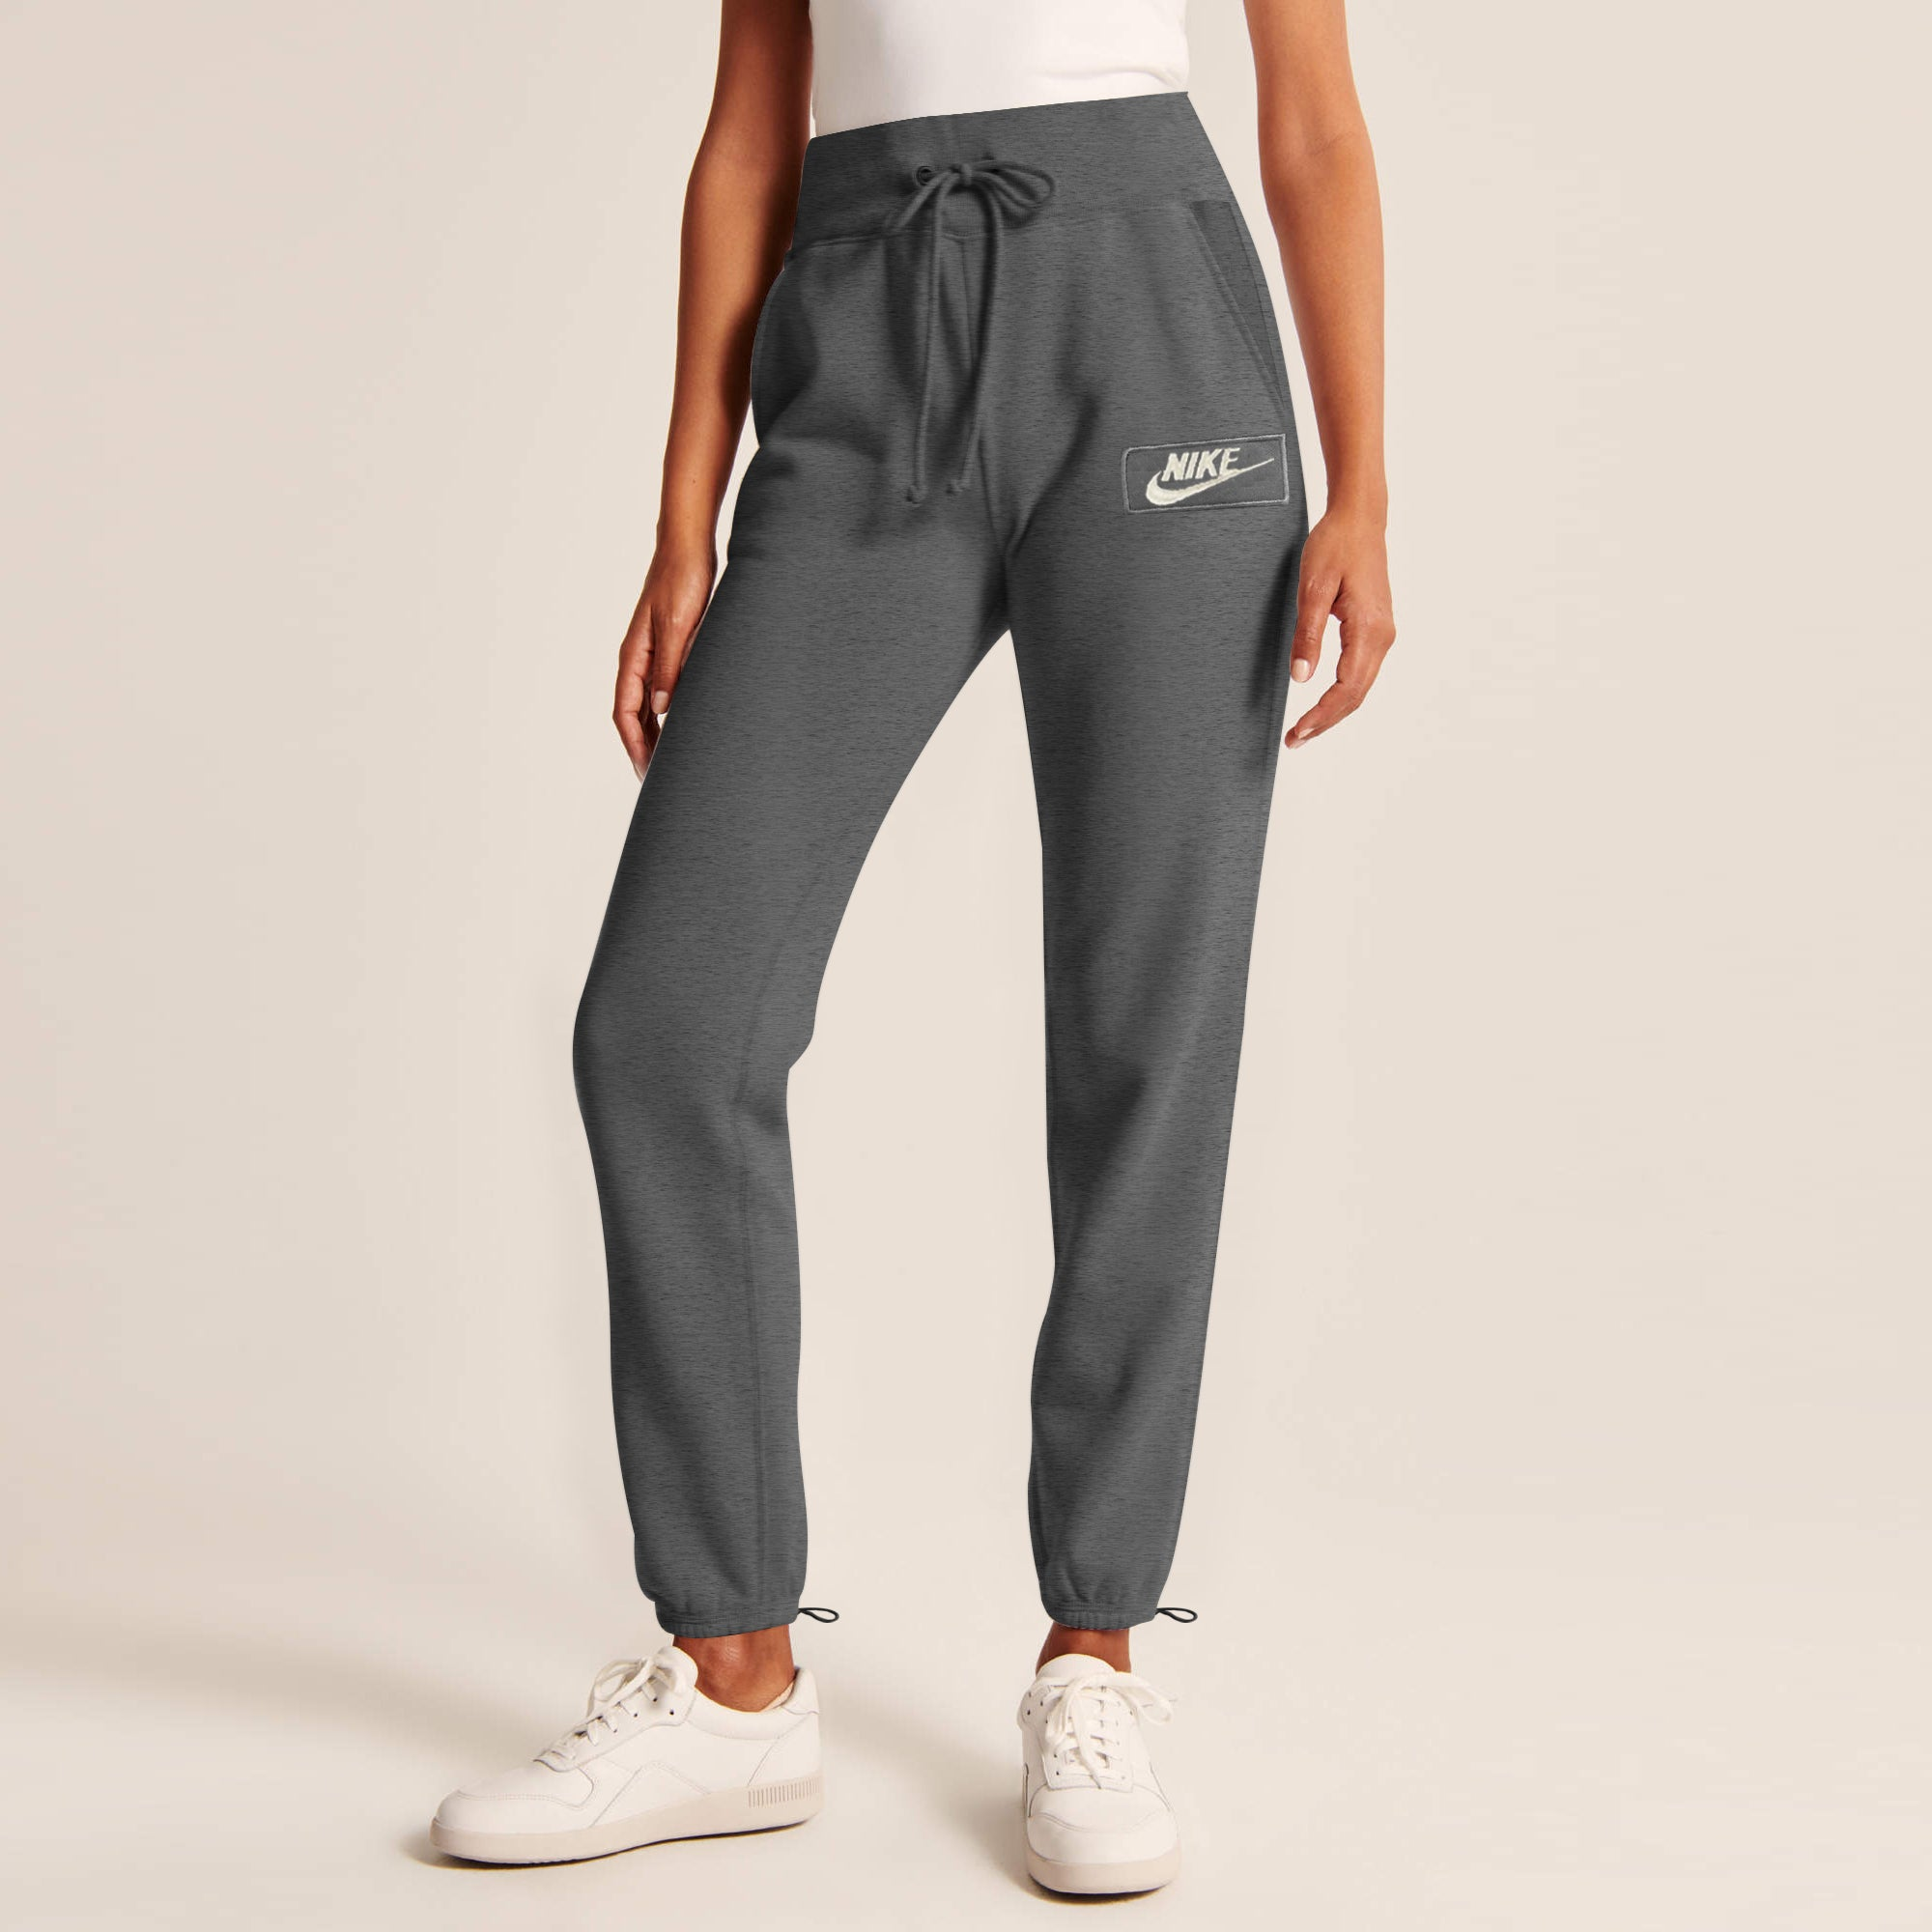 NK Terry Fleece Slim Fit Jogging Trouser For Ladies-Charcoal Melange with White Embroidery-SP4243